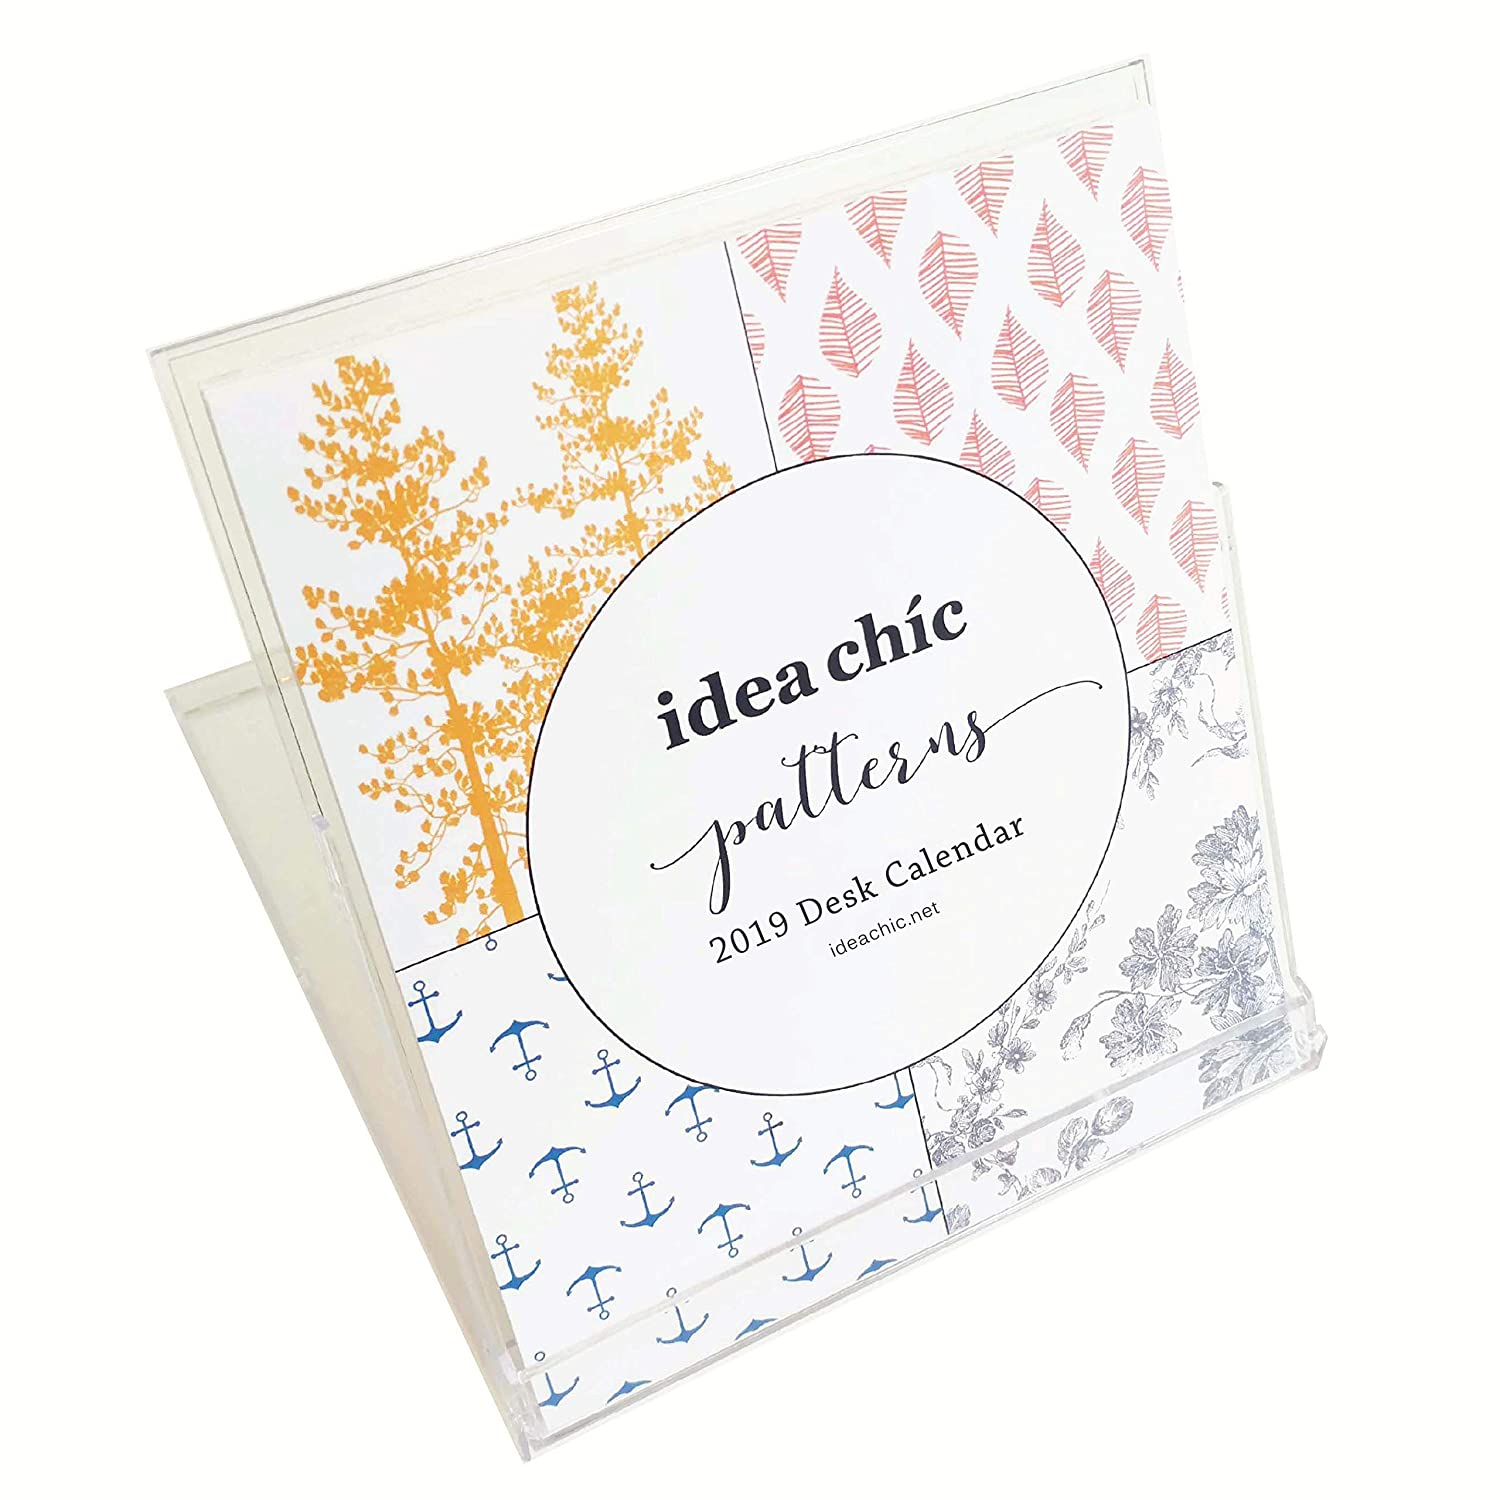 Idea Chíc Patterns 2019 Desk Calendar